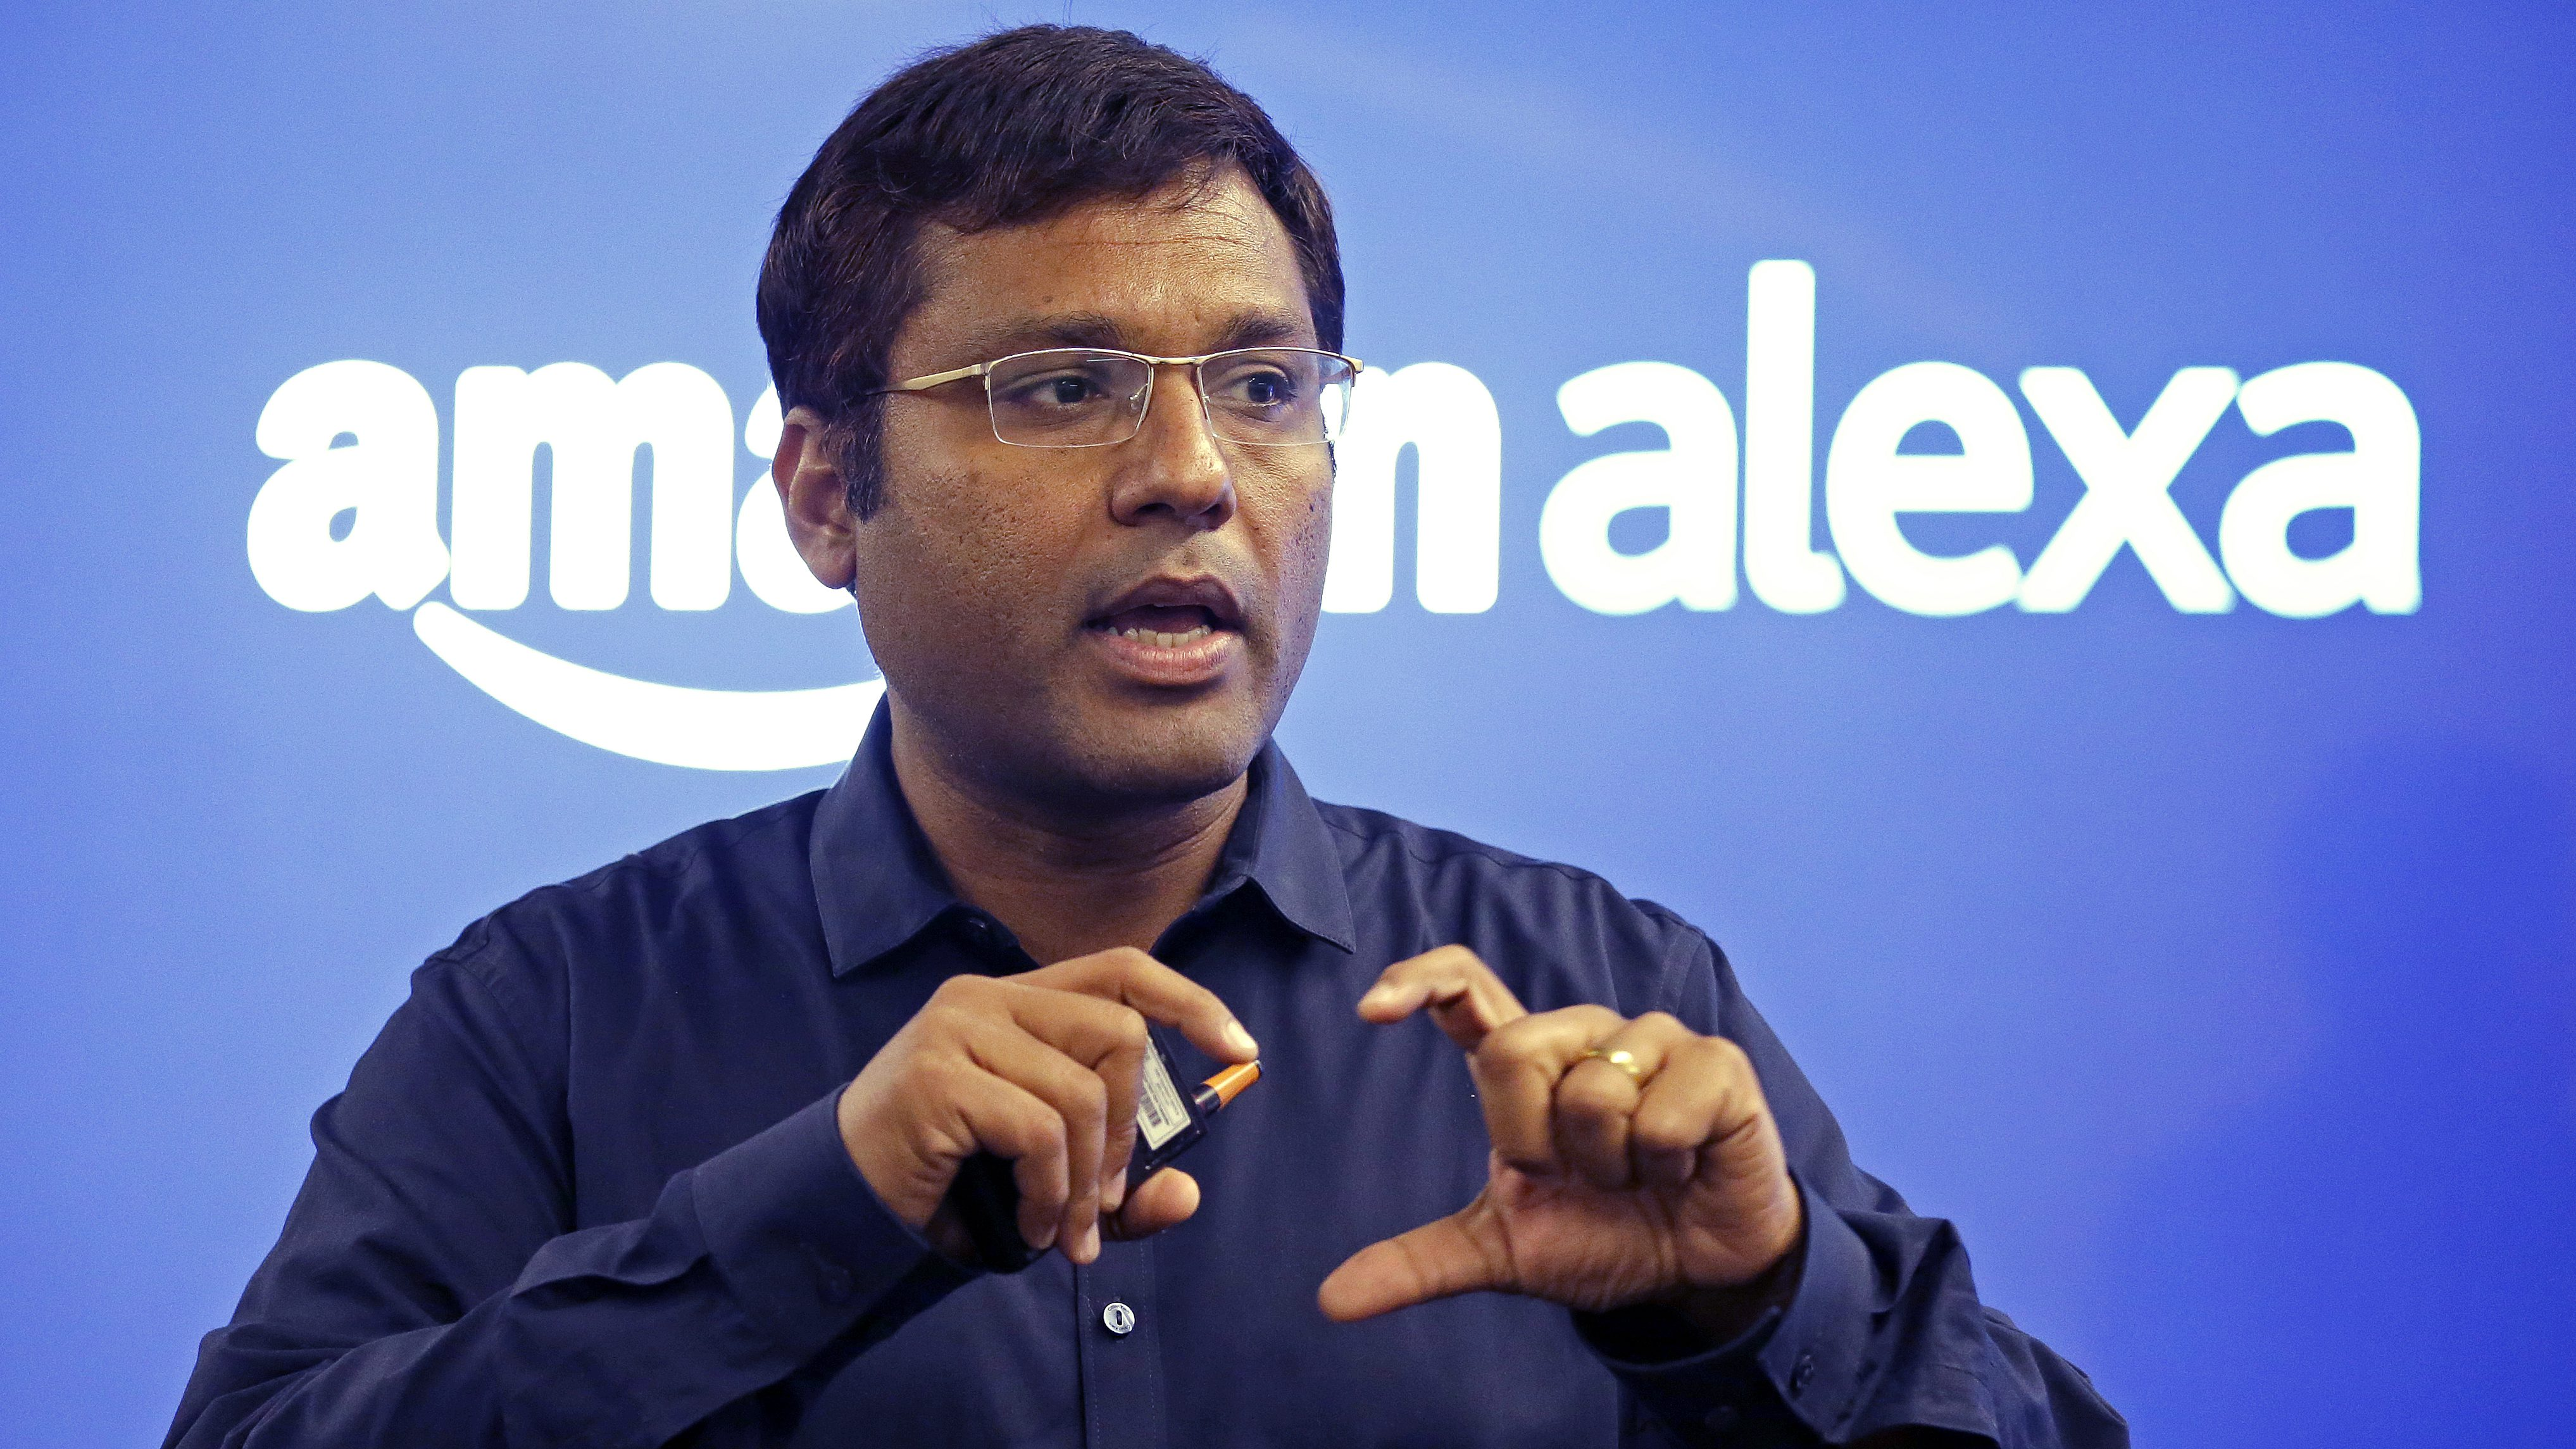 "Rohit Prasad, the Amazon scientist in charge of developing the artificial- intelligence software's abilities to grasp human language, speaks to journalists following a program announcing several new Amazon products by the company, Wednesday, Sept. 27, 2017, in Seattle. Amazon says it is cutting the price of its Echo smart speaker to $100 from $180, improving the sound quality and upgrading its appearance with six new ""shells."" The next generation speaker, which is powered by Amazon's Alexa voice assistant, will have a dedicated woofer and a tweeter for the first time, as well as Dolby sound. (AP Photo/Elaine Thompson)"